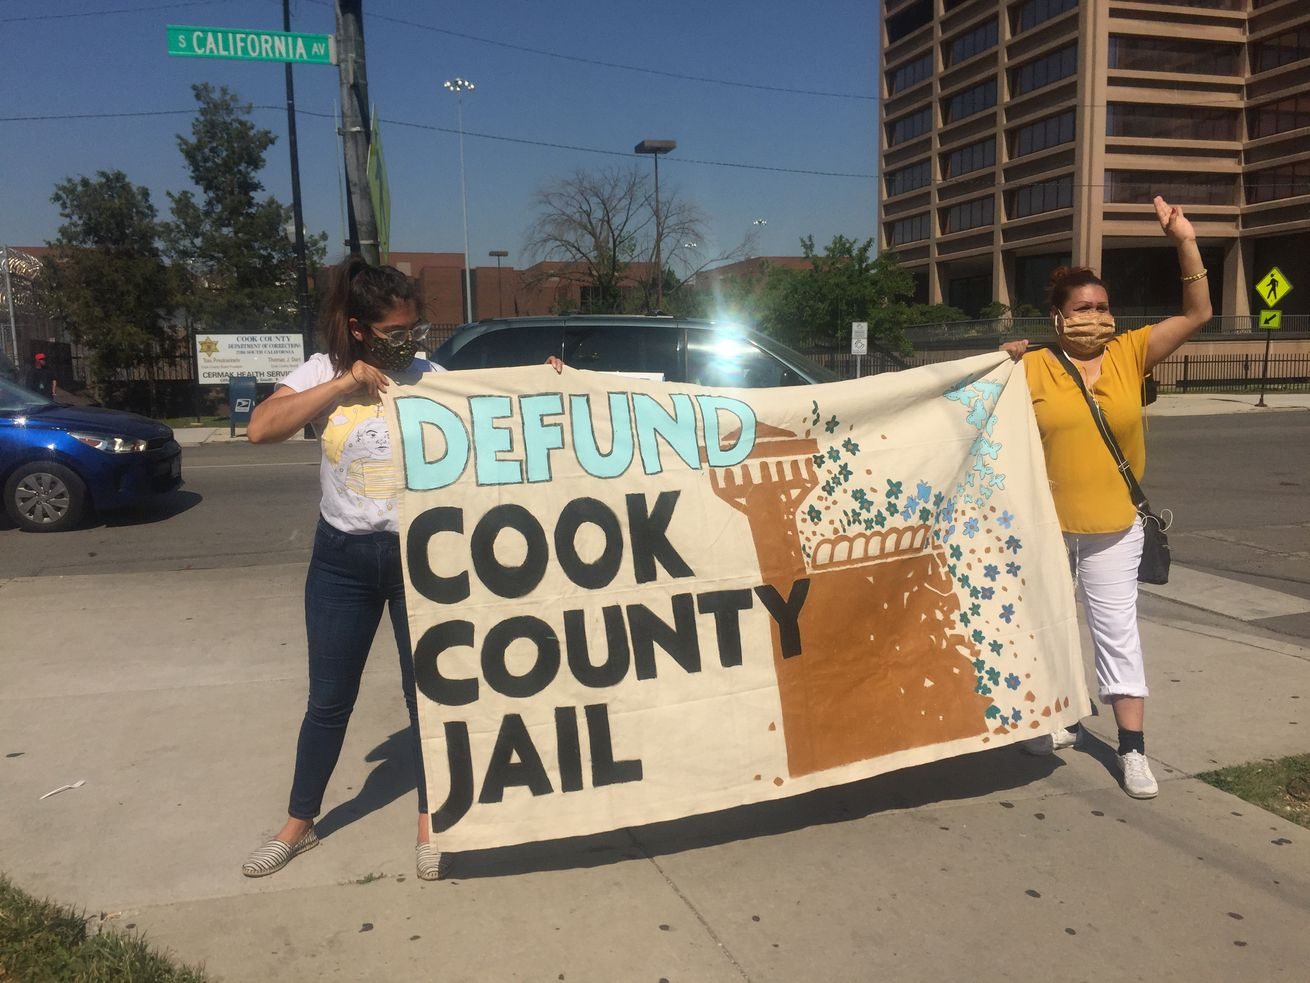 Protesters call for defunding of Cook County Jail